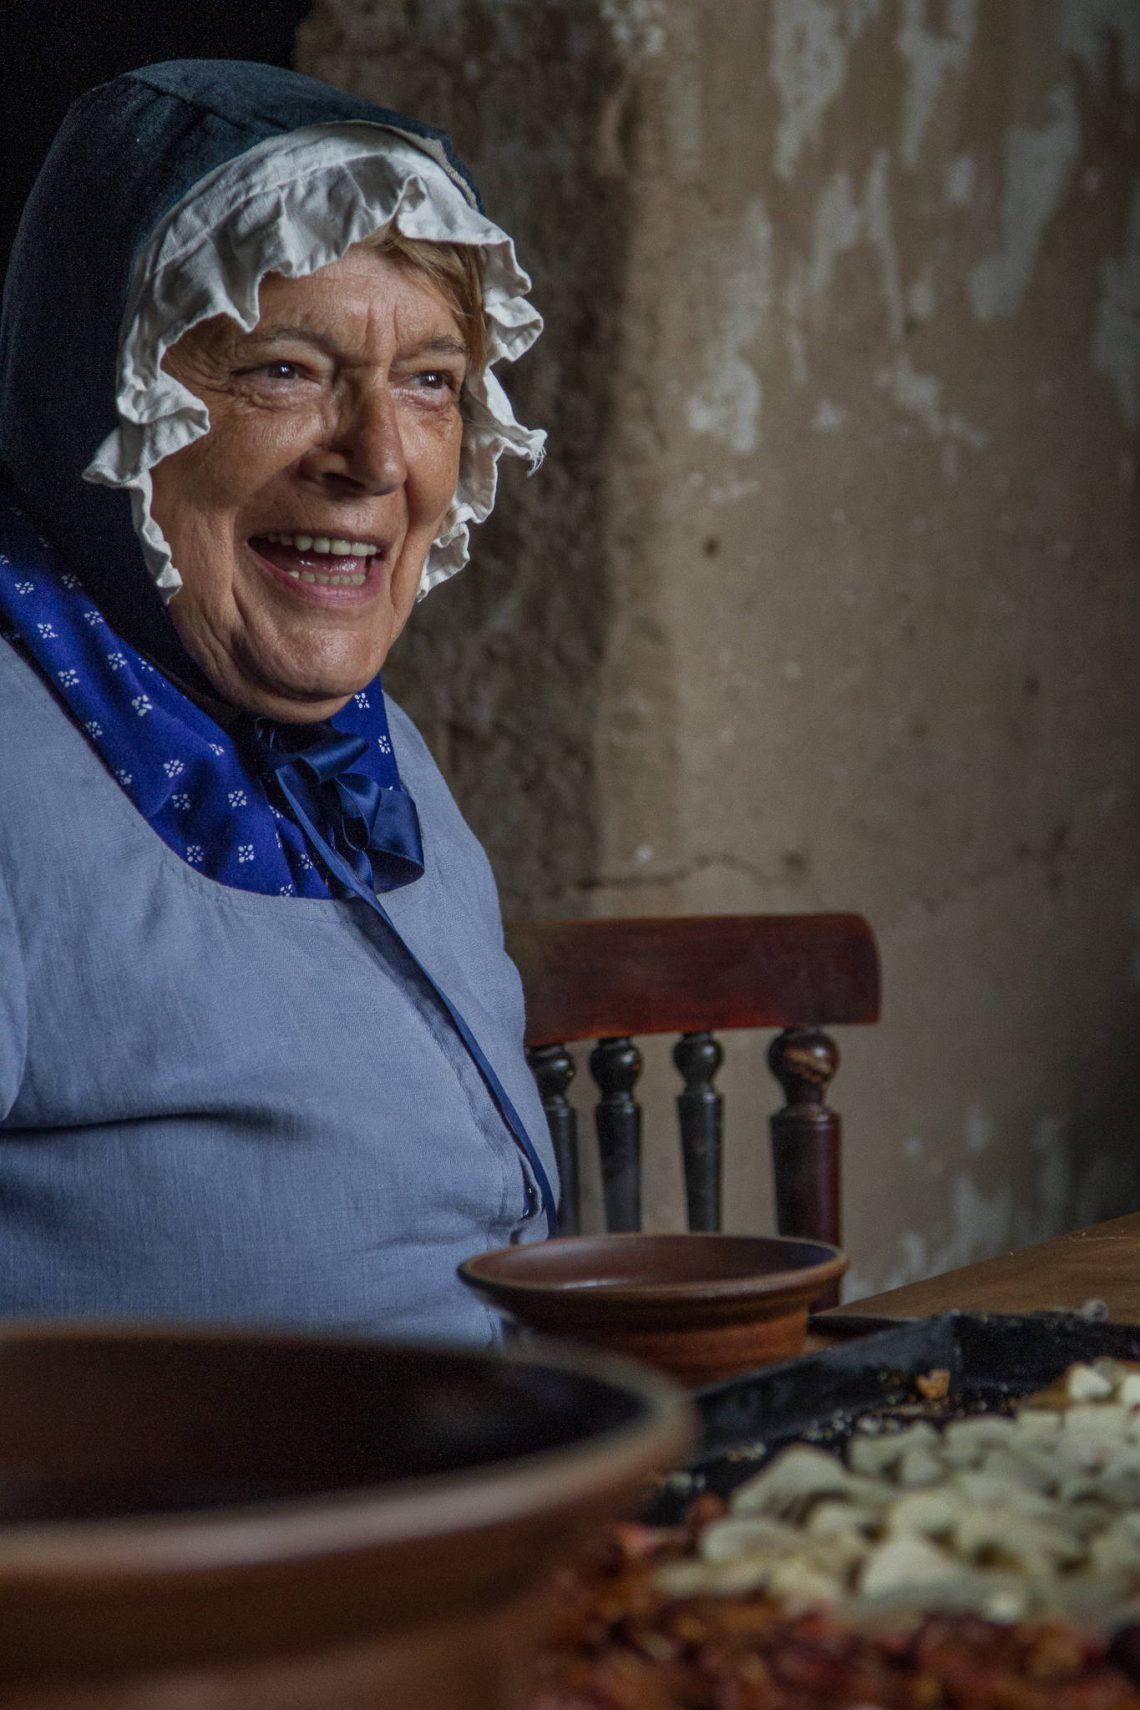 Living History 1813 - The old peasant woman